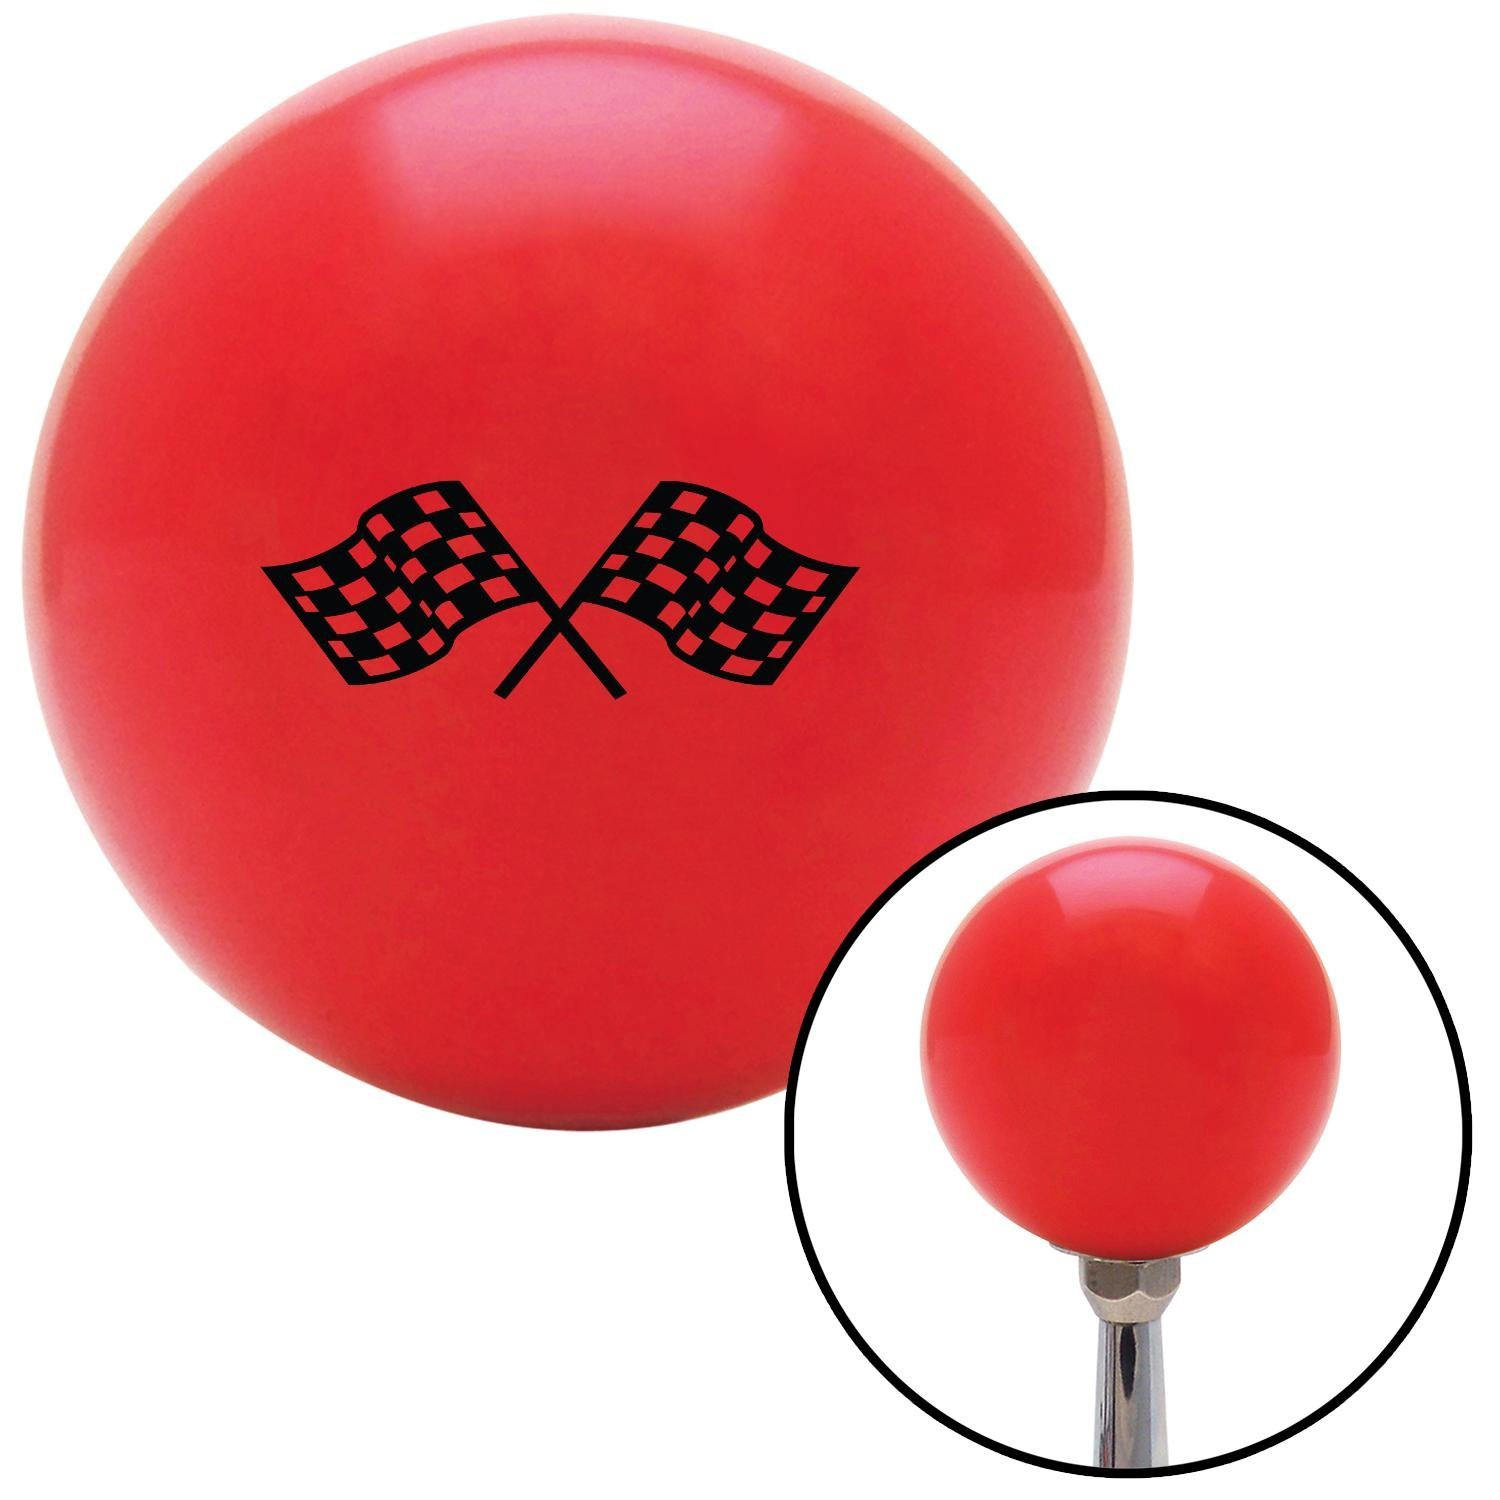 American Shifter 94287 Red Shift Knob with M16 x 1.5 Insert Black Checkered Racing Flags